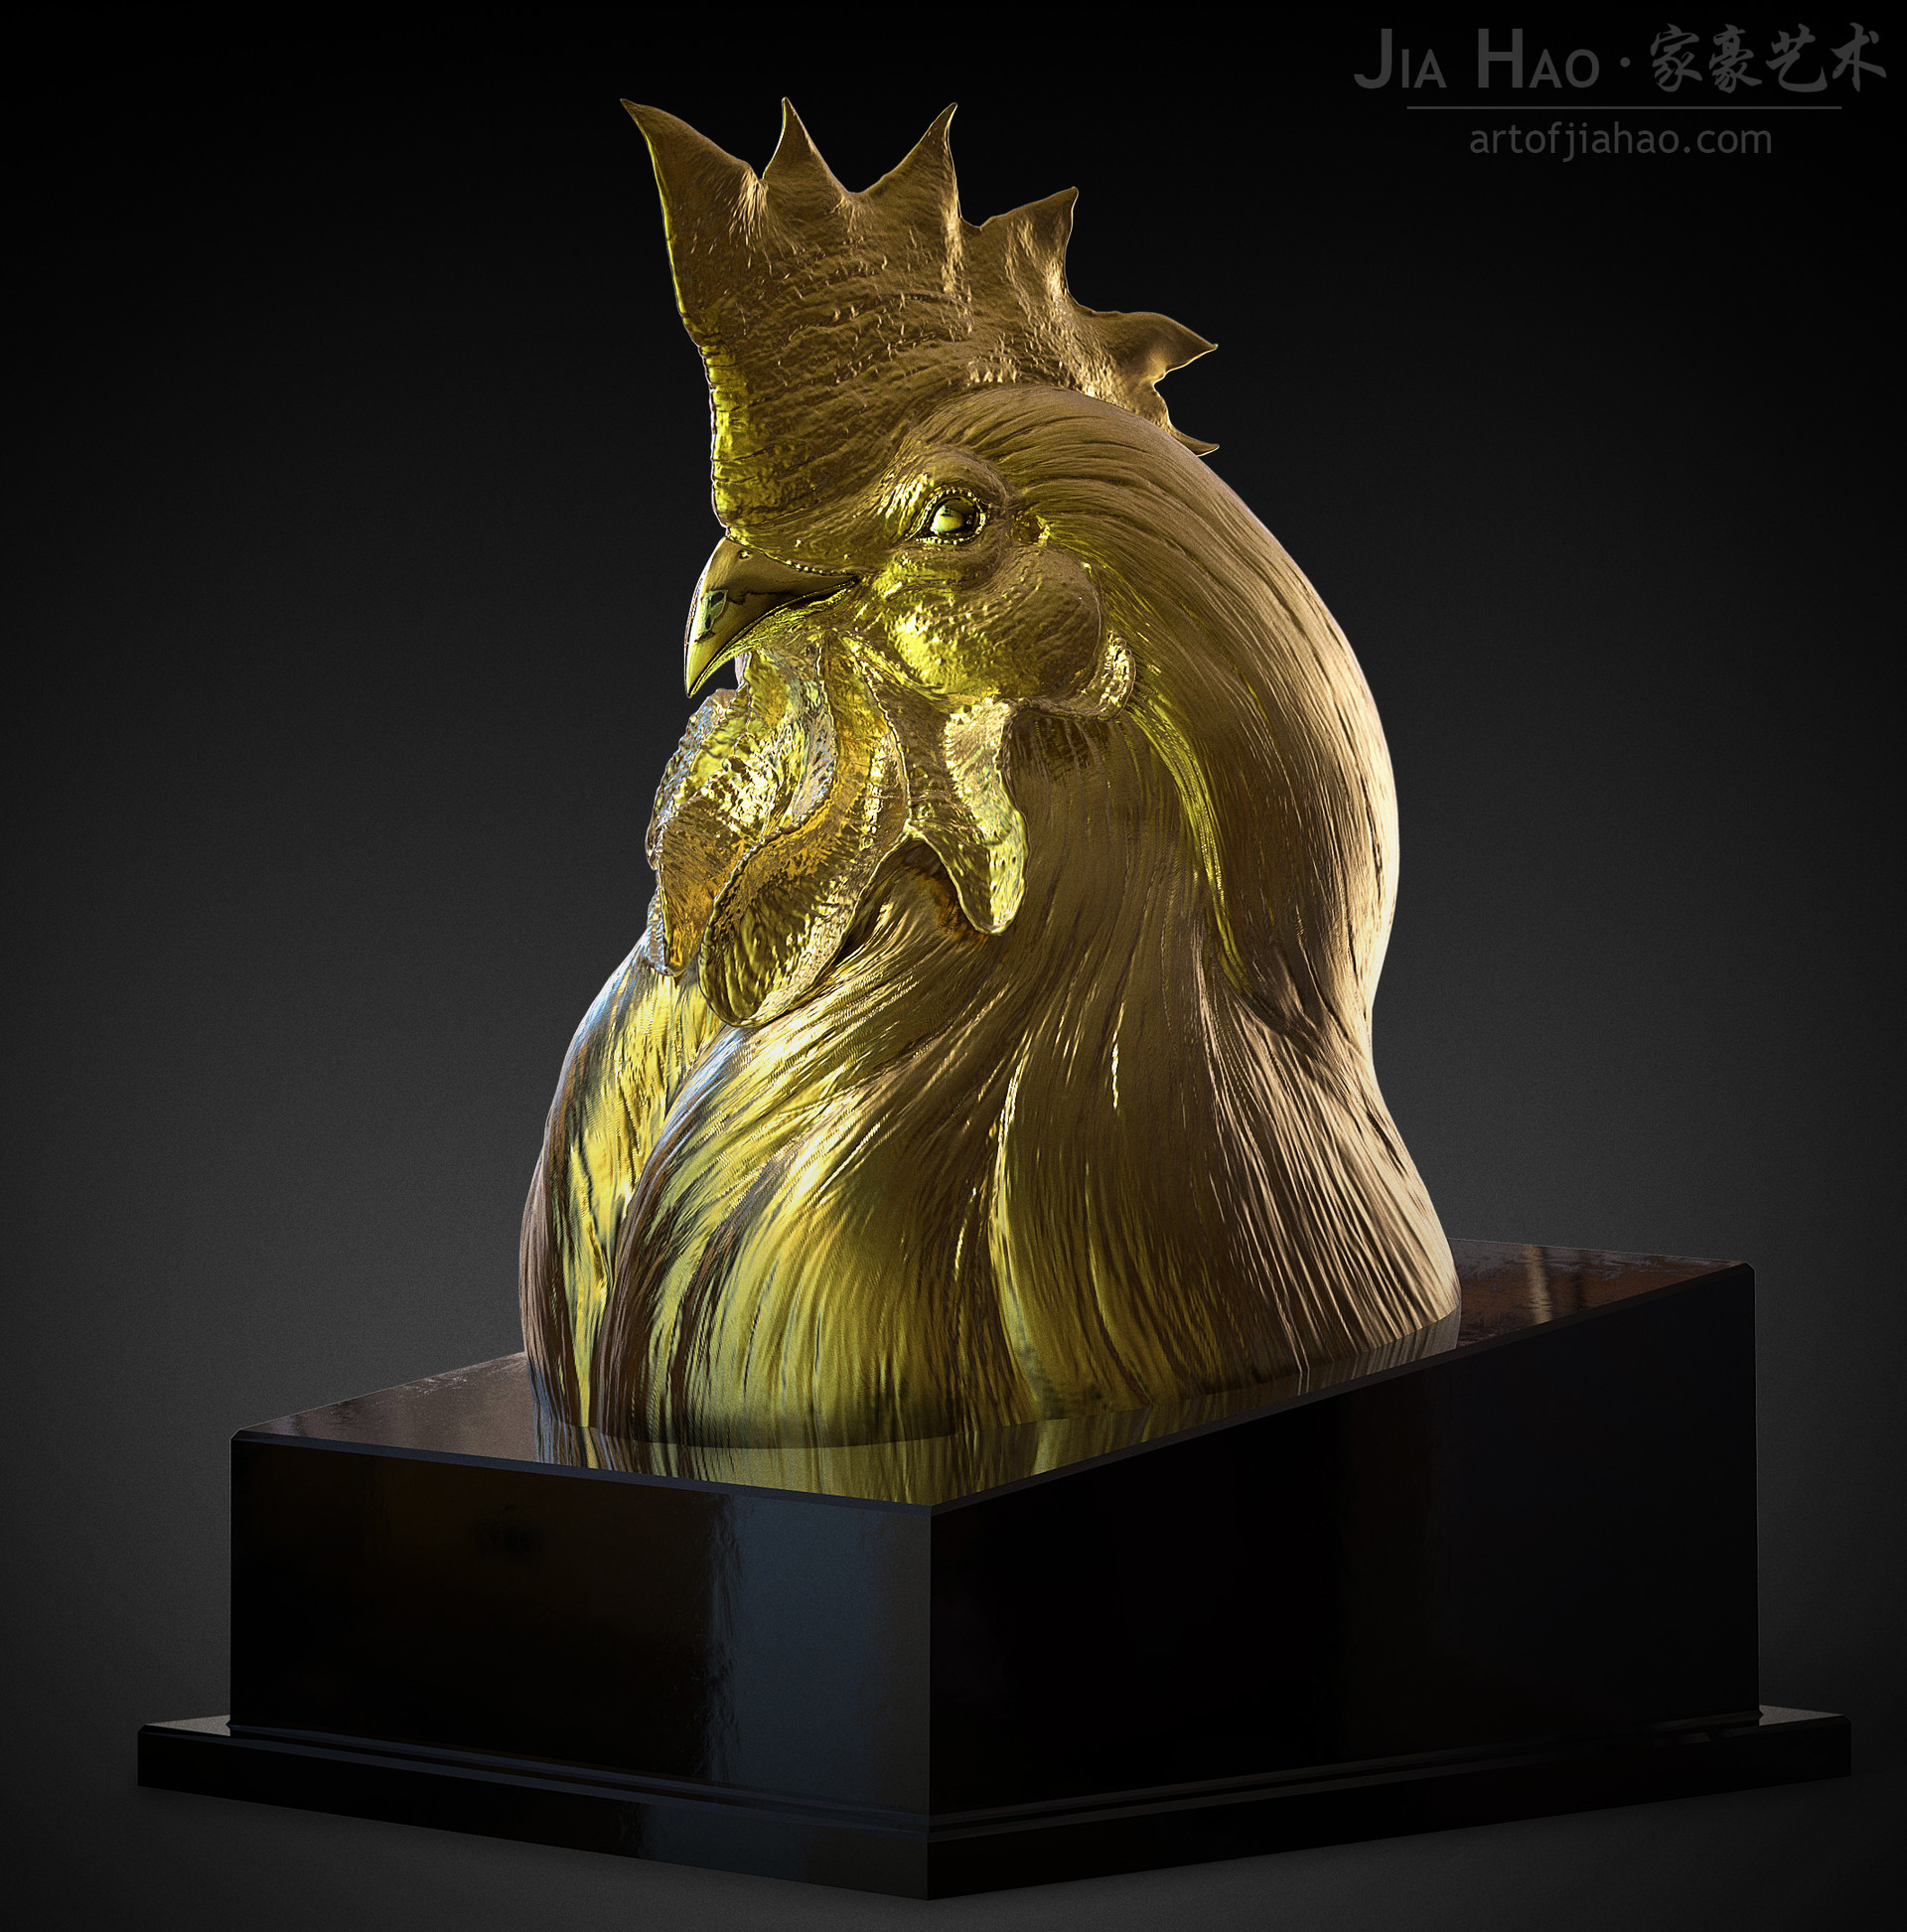 Jia hao 2017 sculpture majesticrooster comp gold